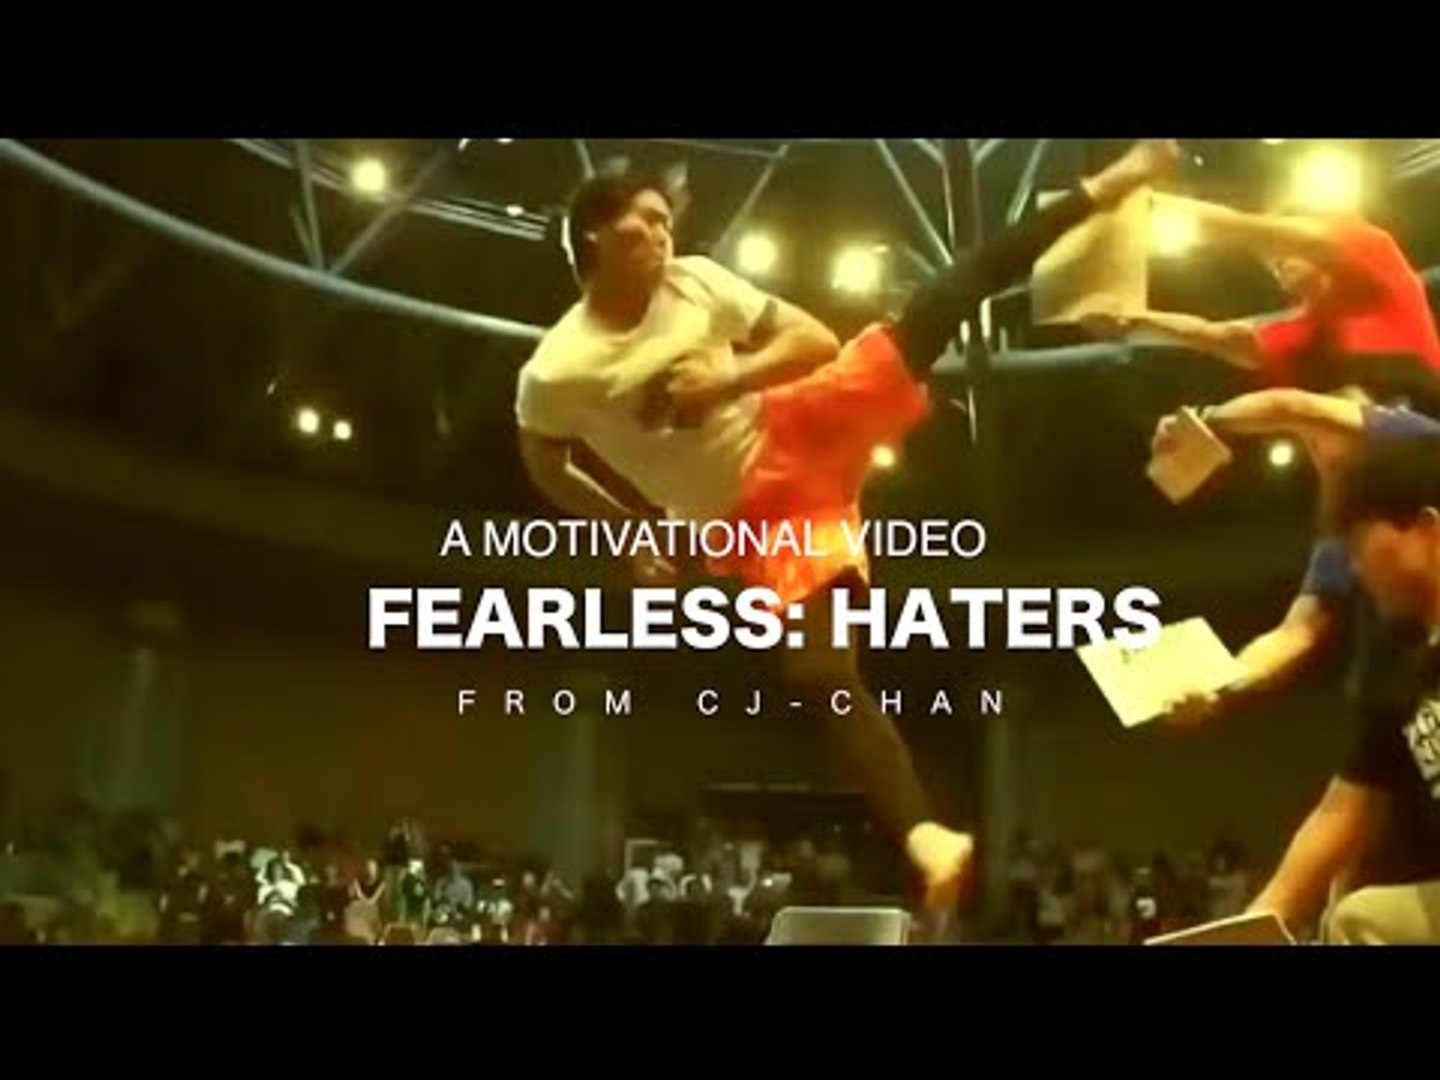 Fearless Haters - Motivational Video